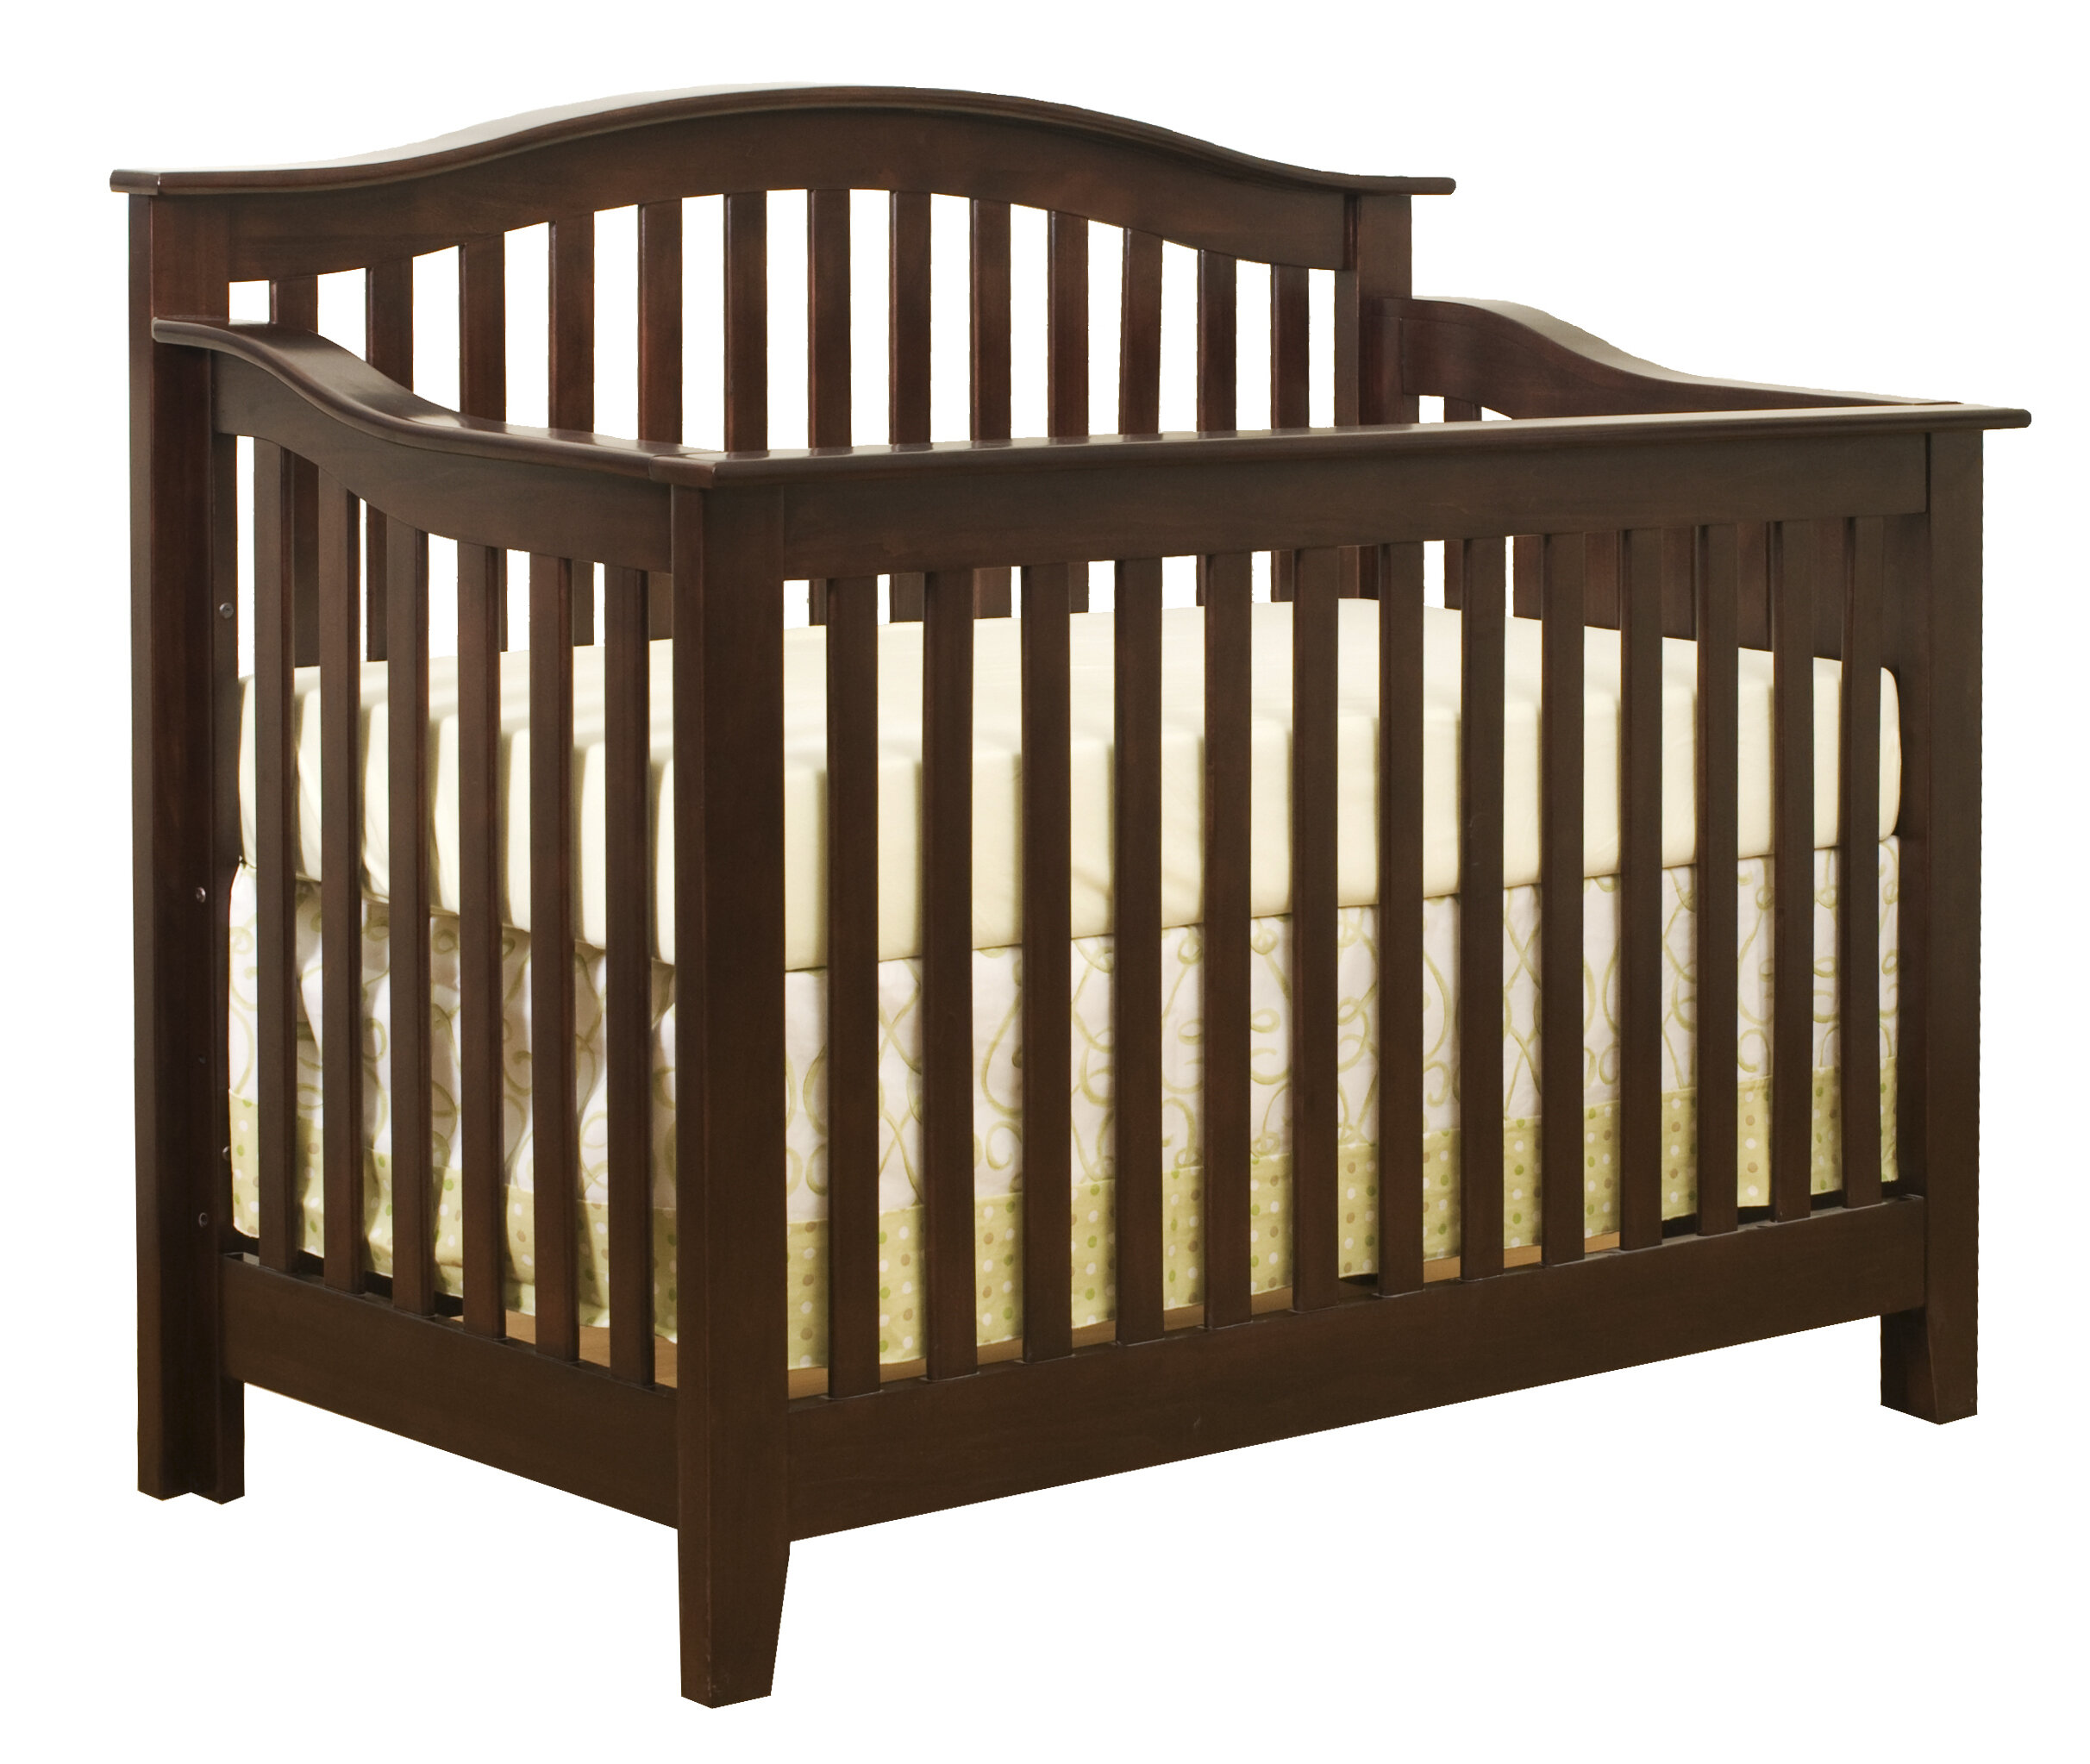 dream collection emily davinci cherry cribs toddler rail magnifier w raw convertible s in crib baby